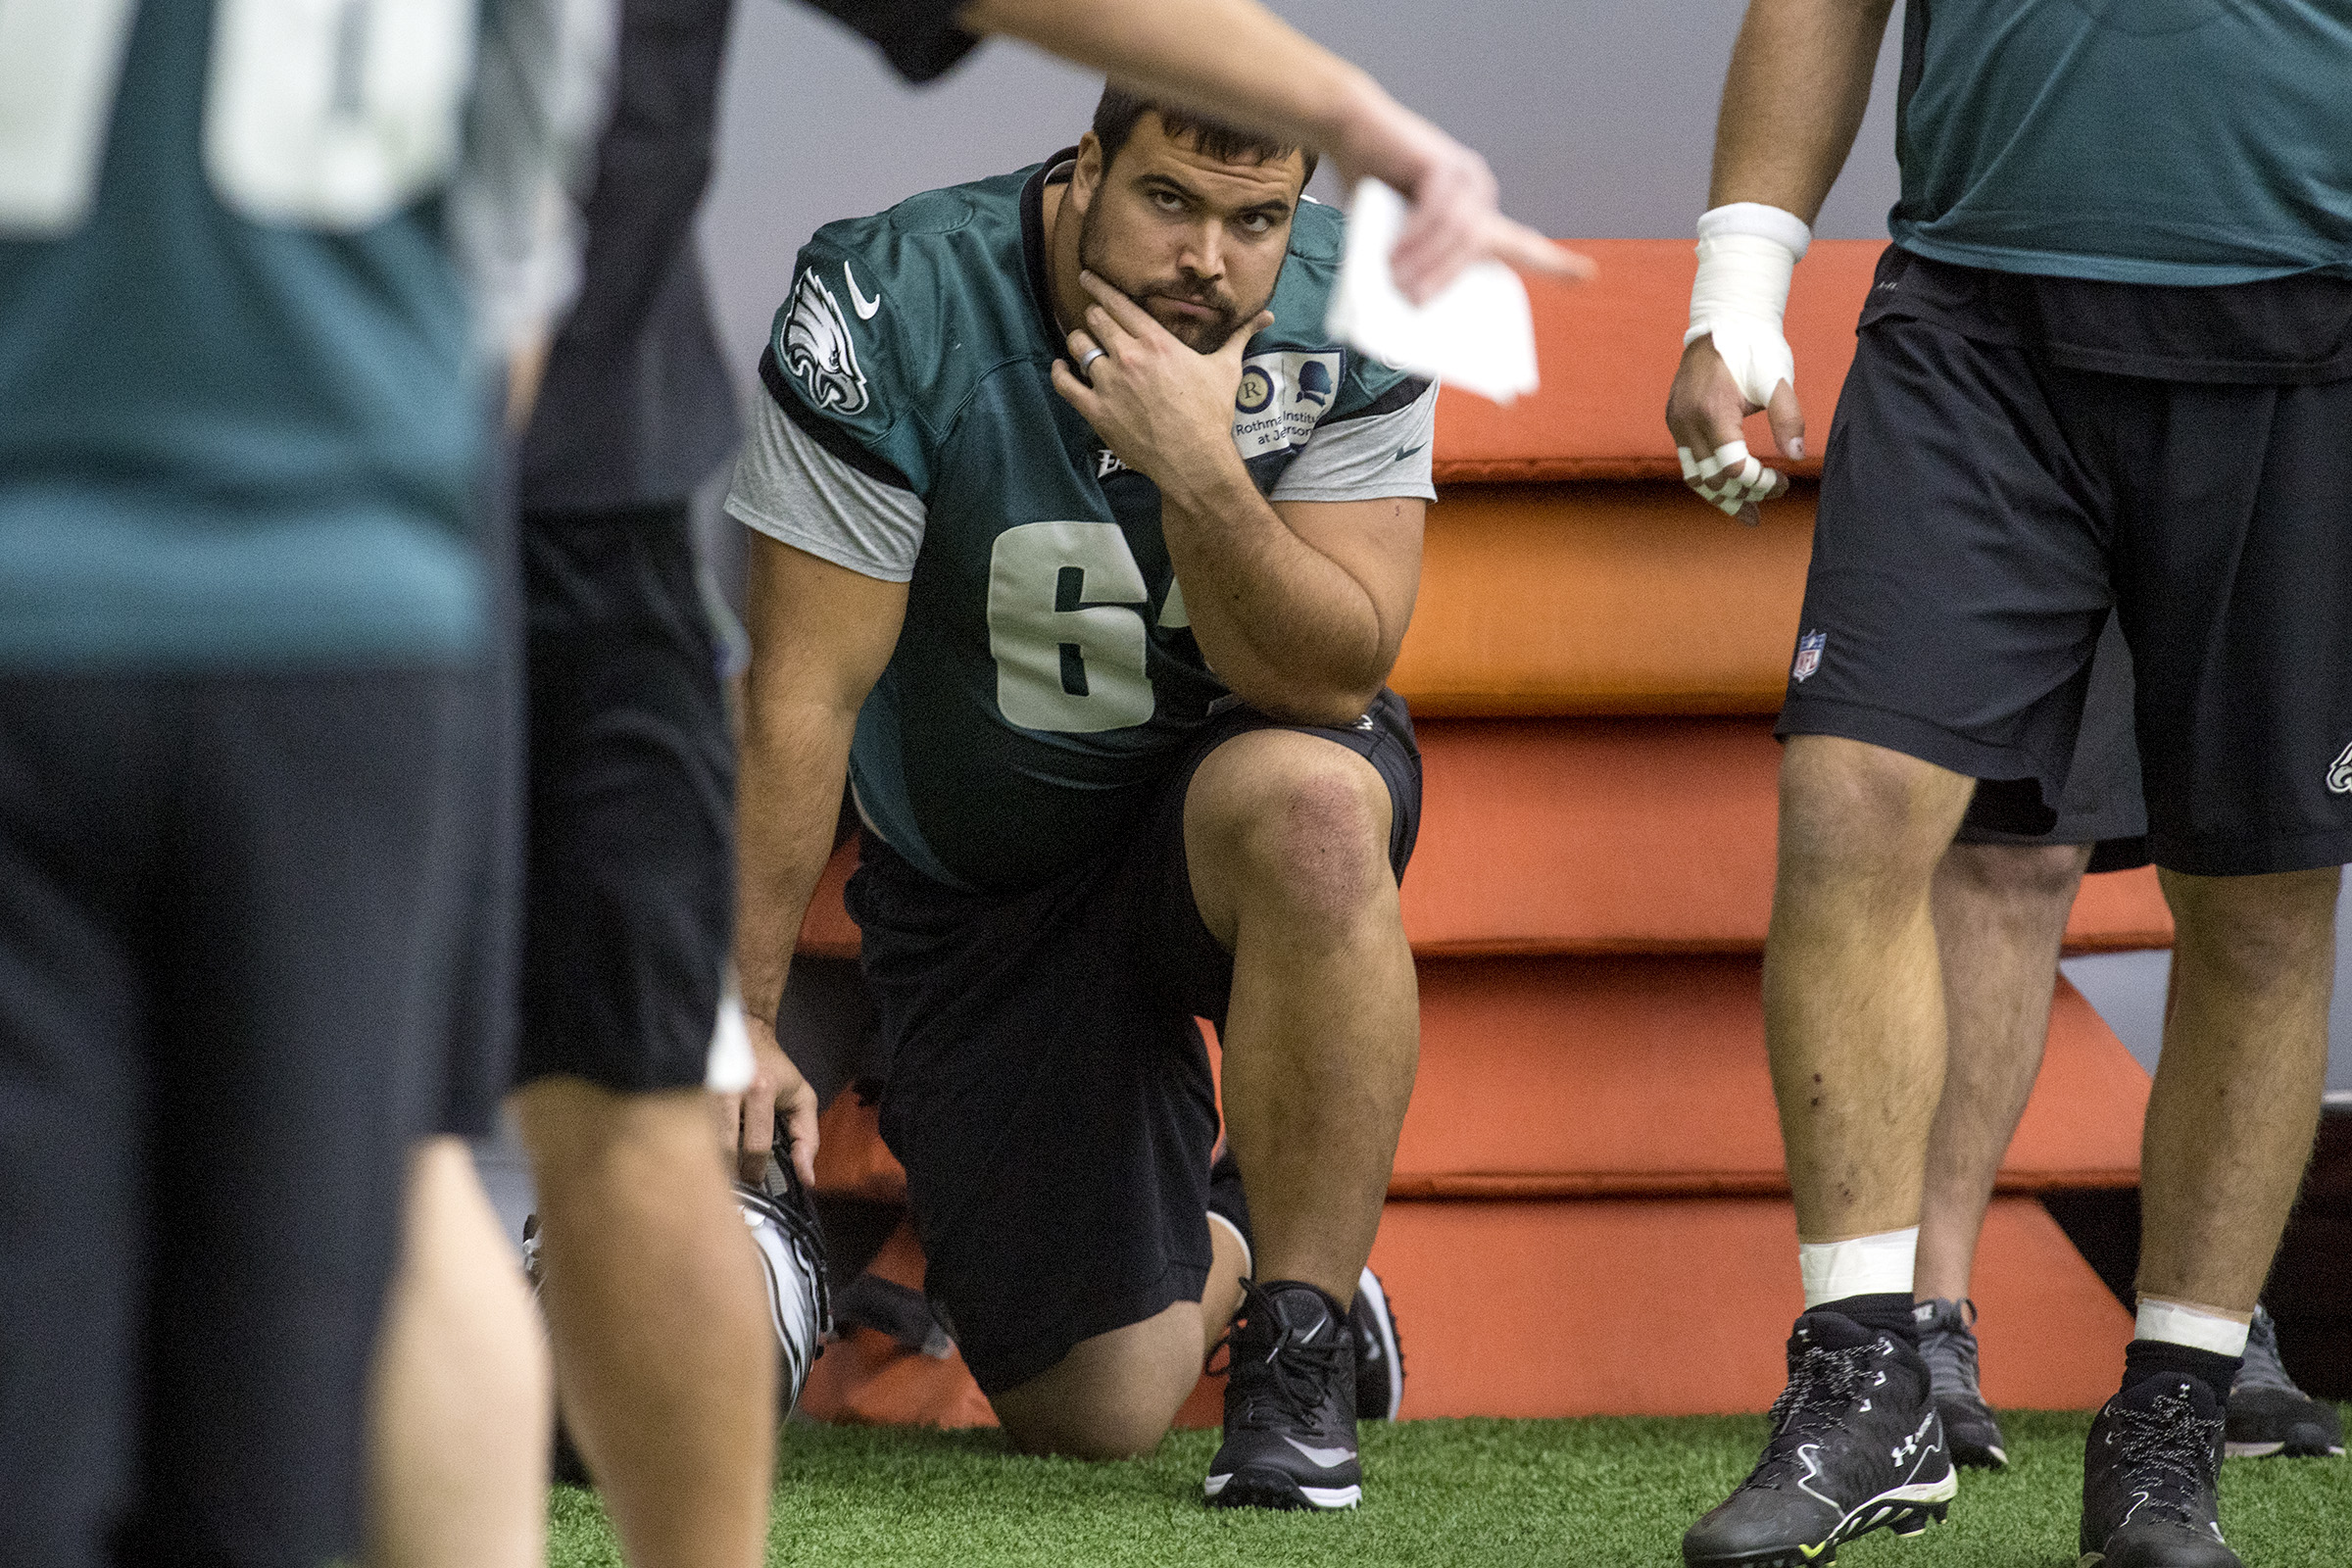 Injured Eagles offensive lineman Stefen Wisniewski listens as line coach Jeff Stoutland points something out during drills as the team prepares for their upcoming game against the New York Giants inside The Bubble at the Nova Care Complex December 13, 2017. CLEM MURRAY / Staff Photographer